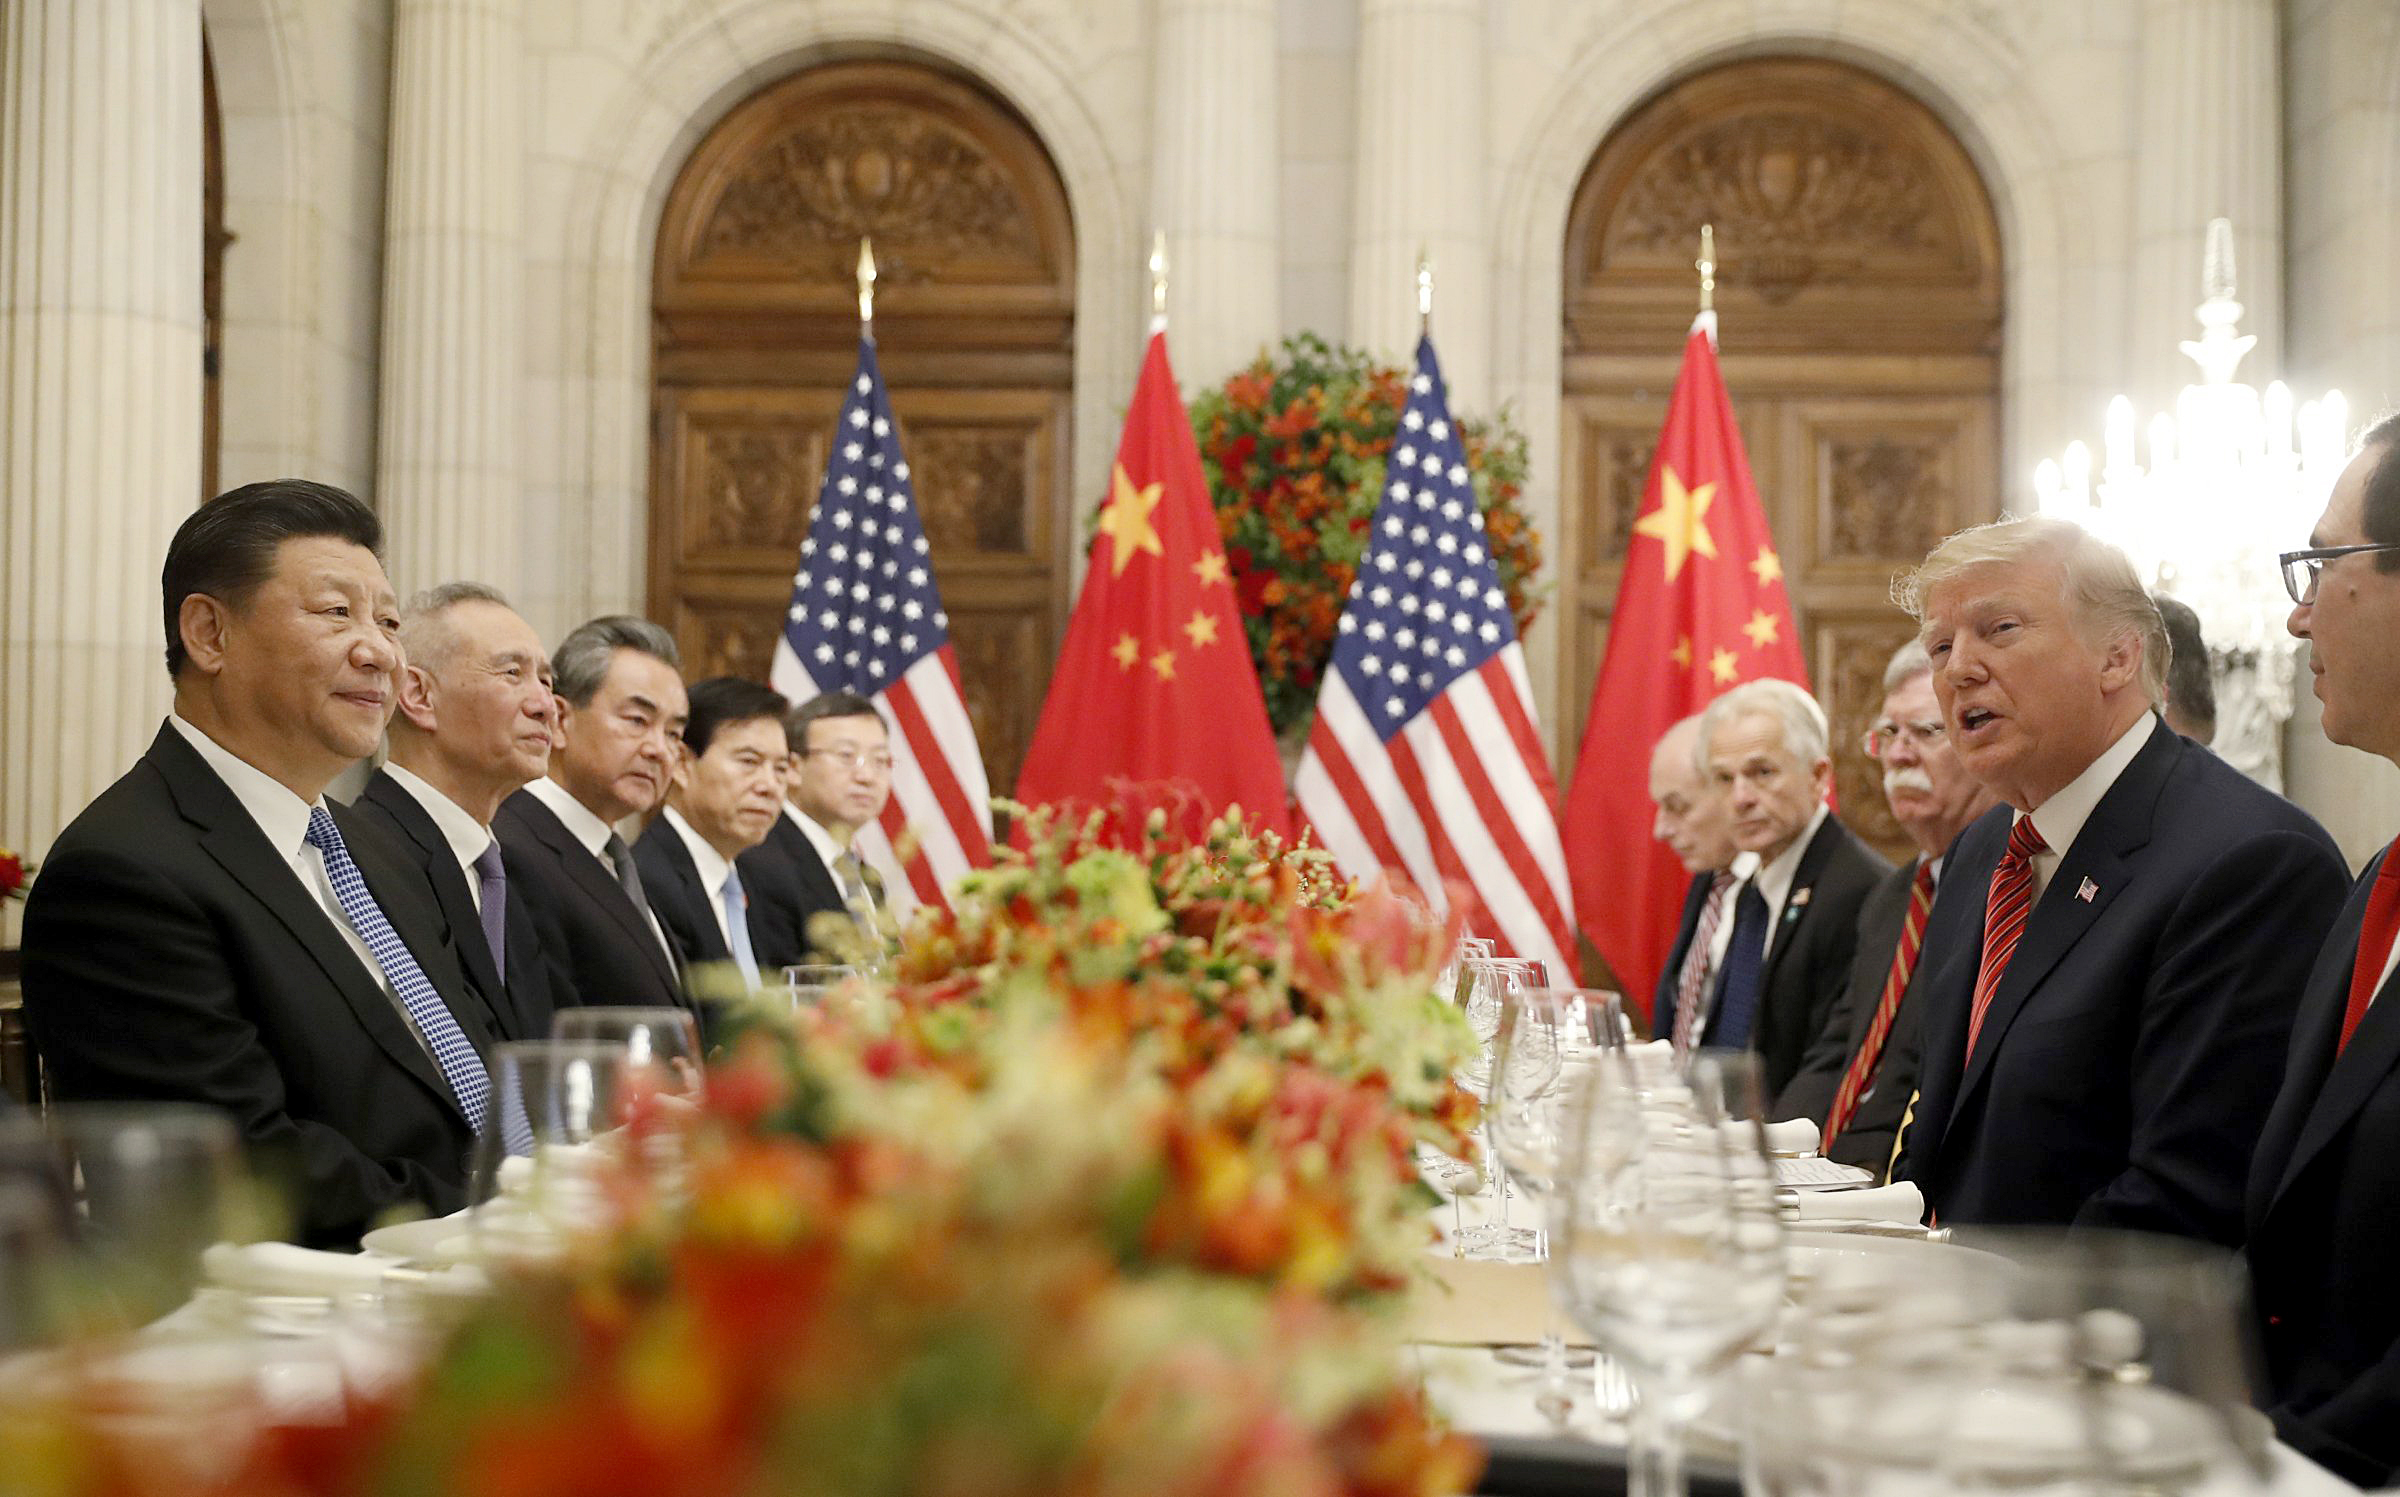 'Unlimited possibilities': Trump agrees to pause U.S. trade war with China